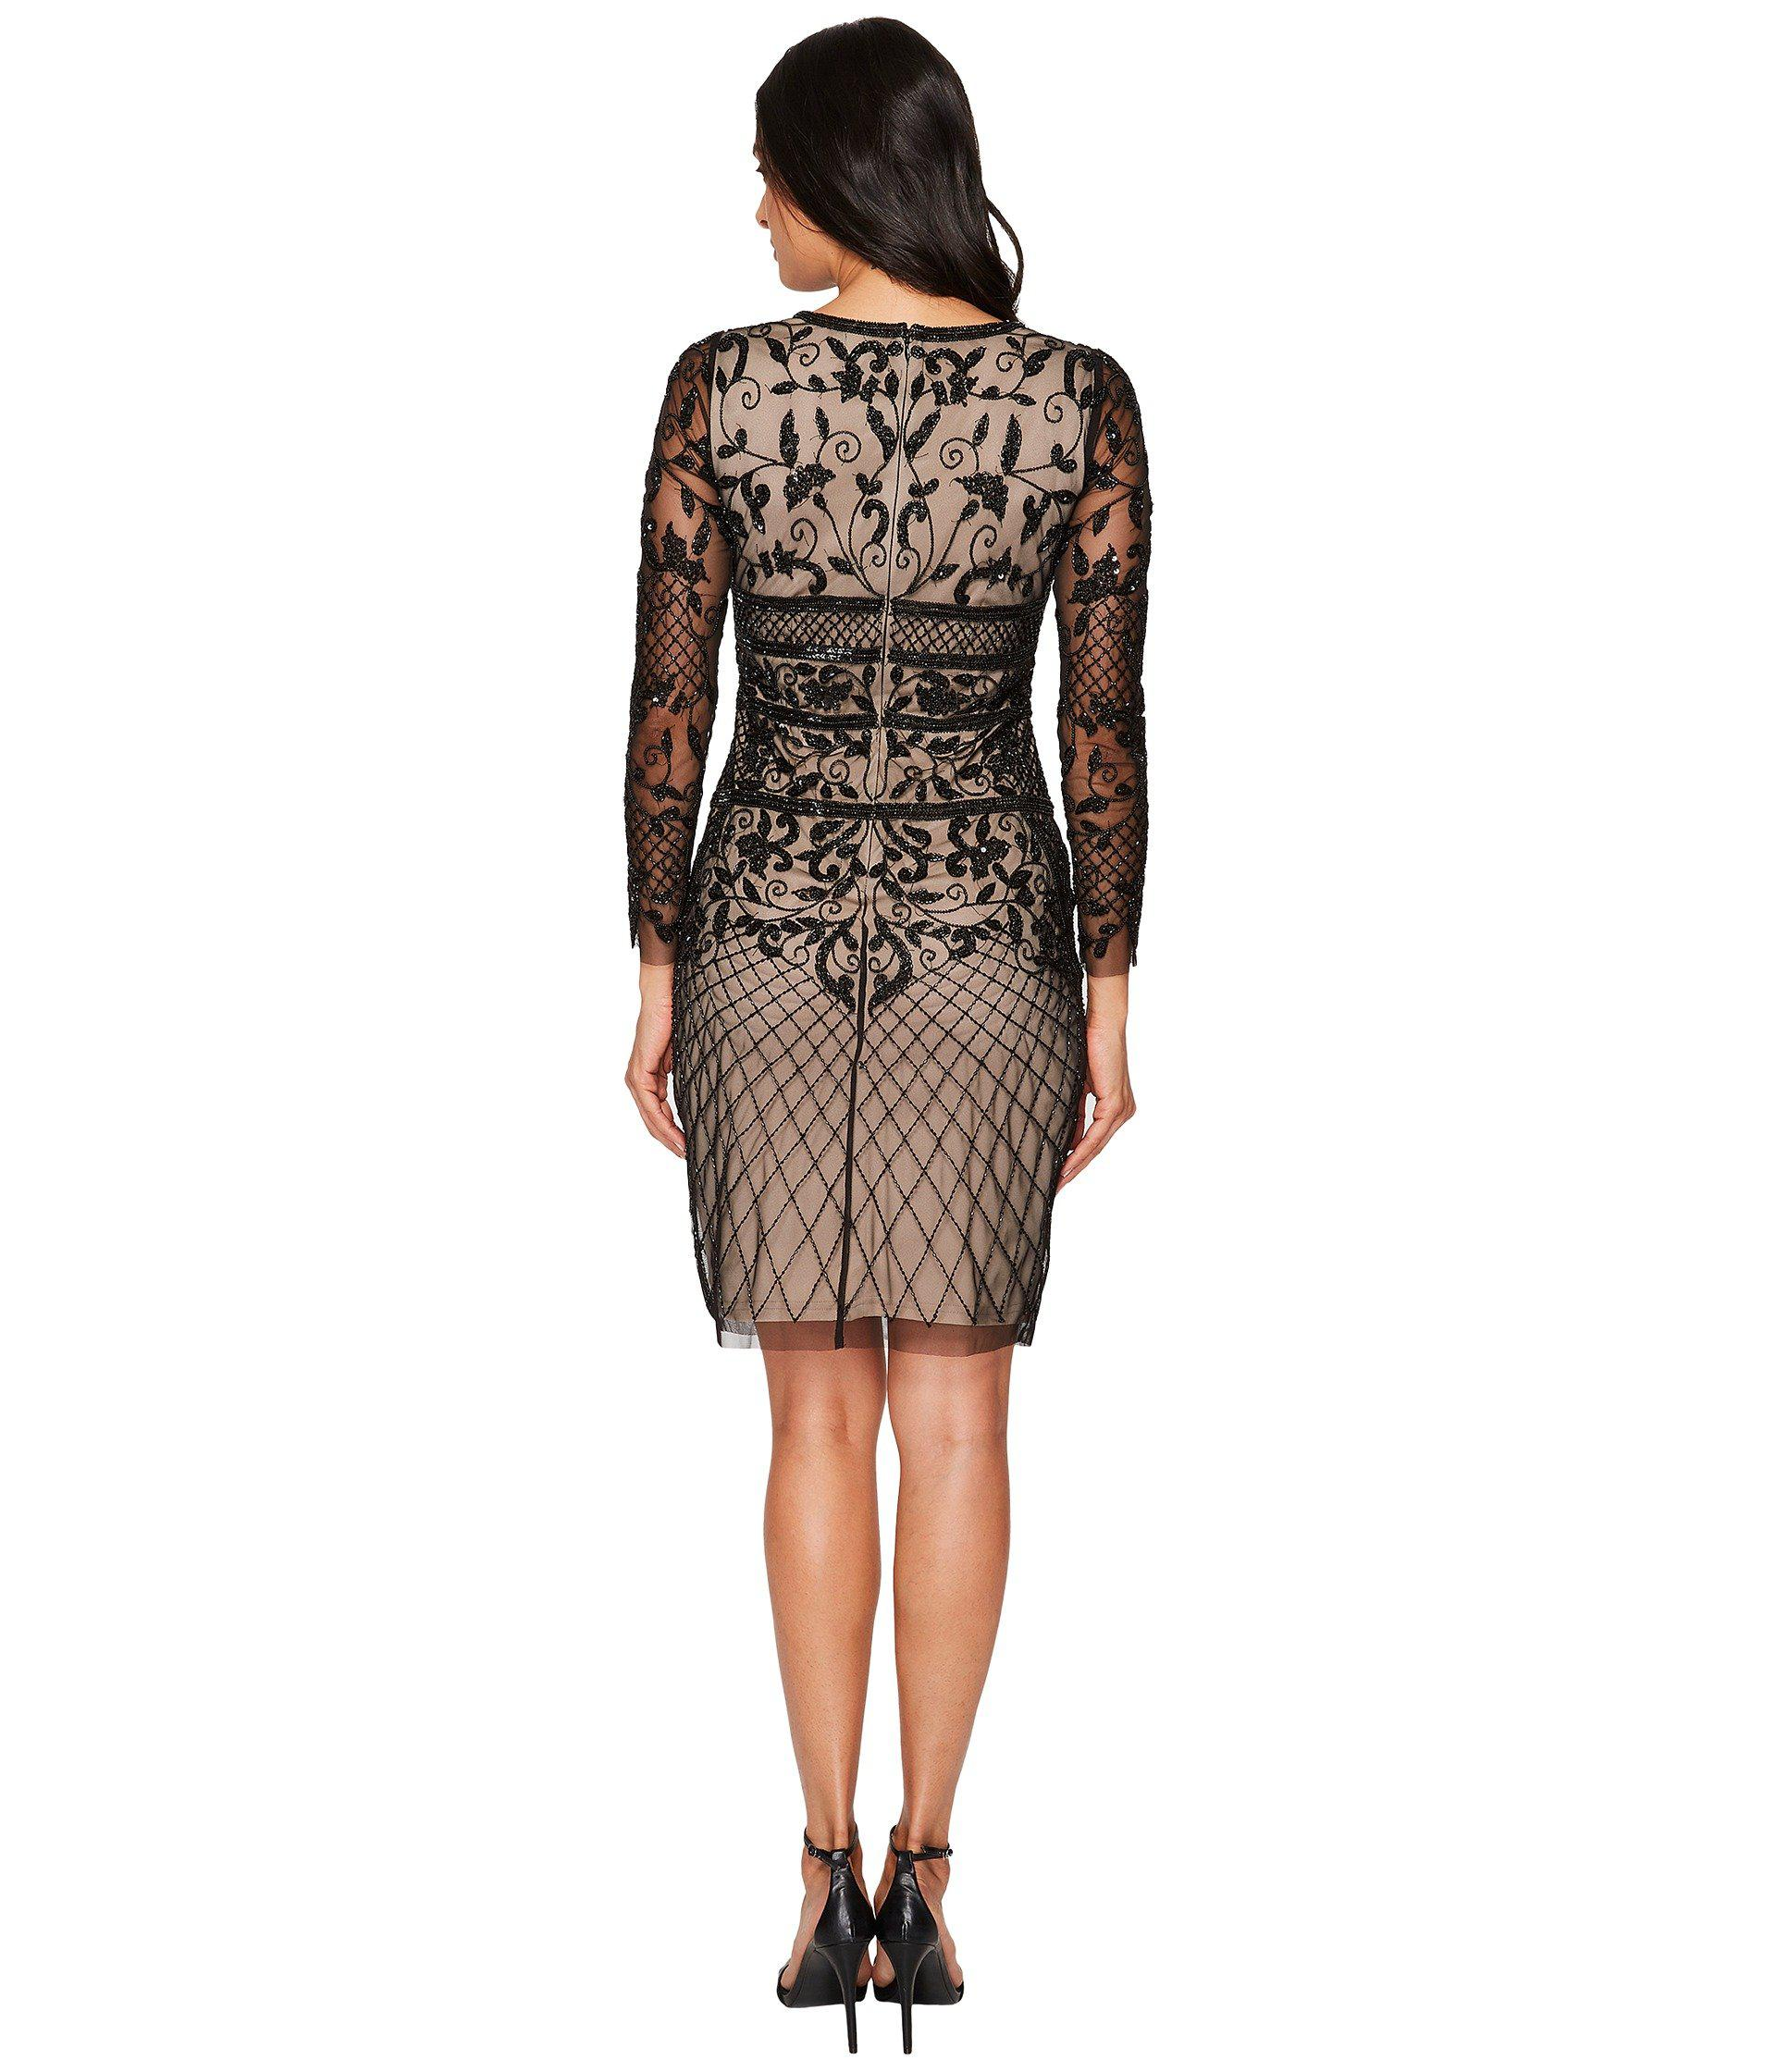 e9accfd92f04 Adrianna Papell Long Sleeve Fully Beaded Cocktail Dress With Nude ...